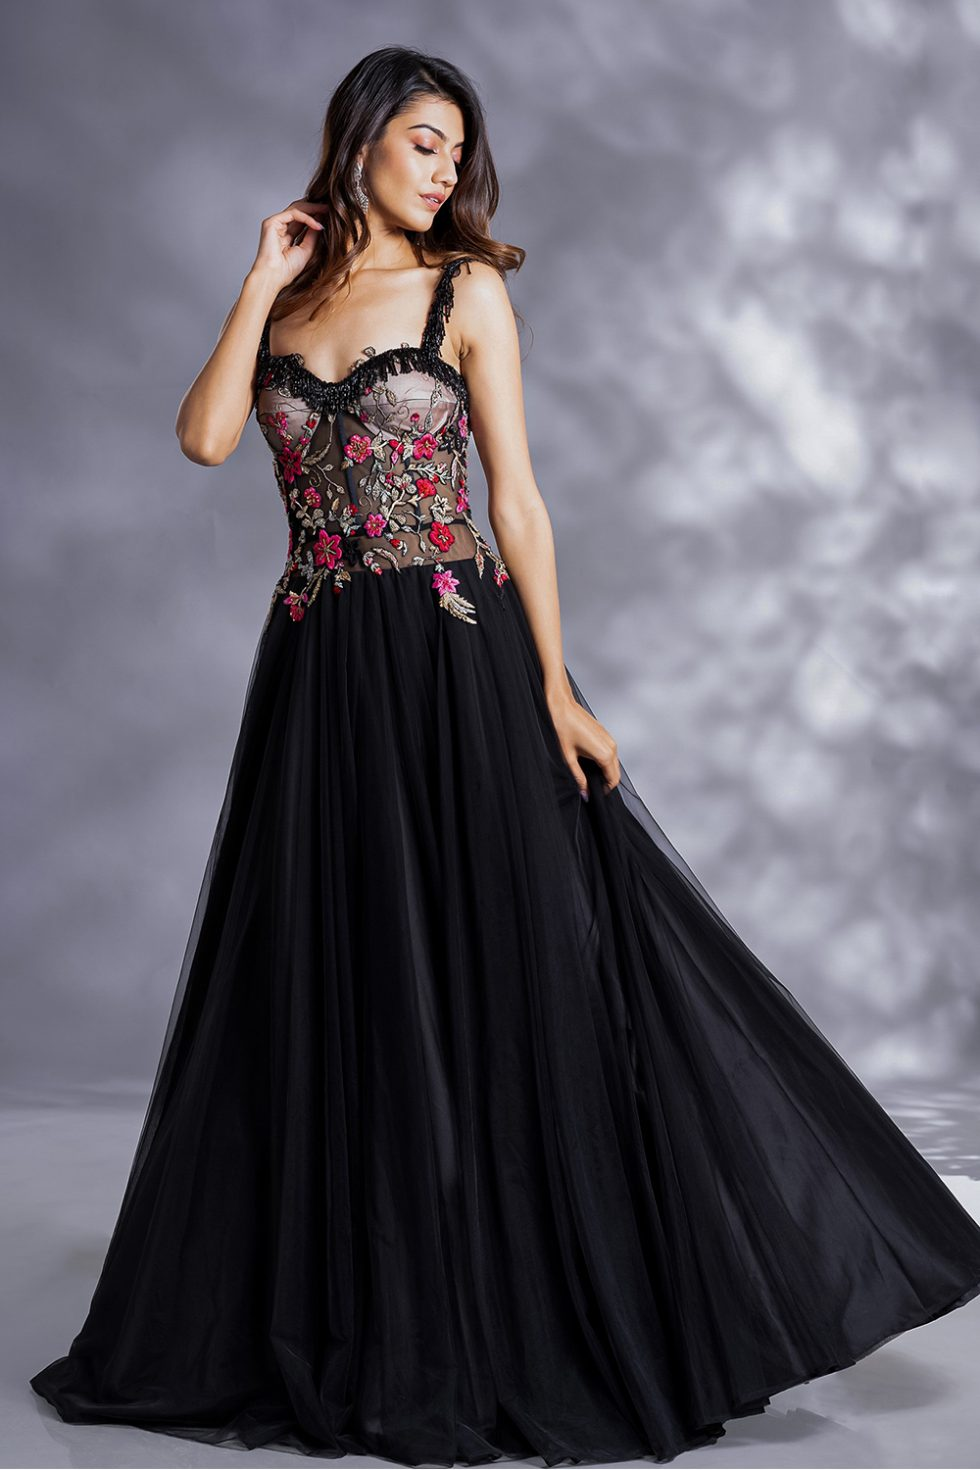 Raven black classic tulle gown with multicoloured and gold embroidery with black tassels.